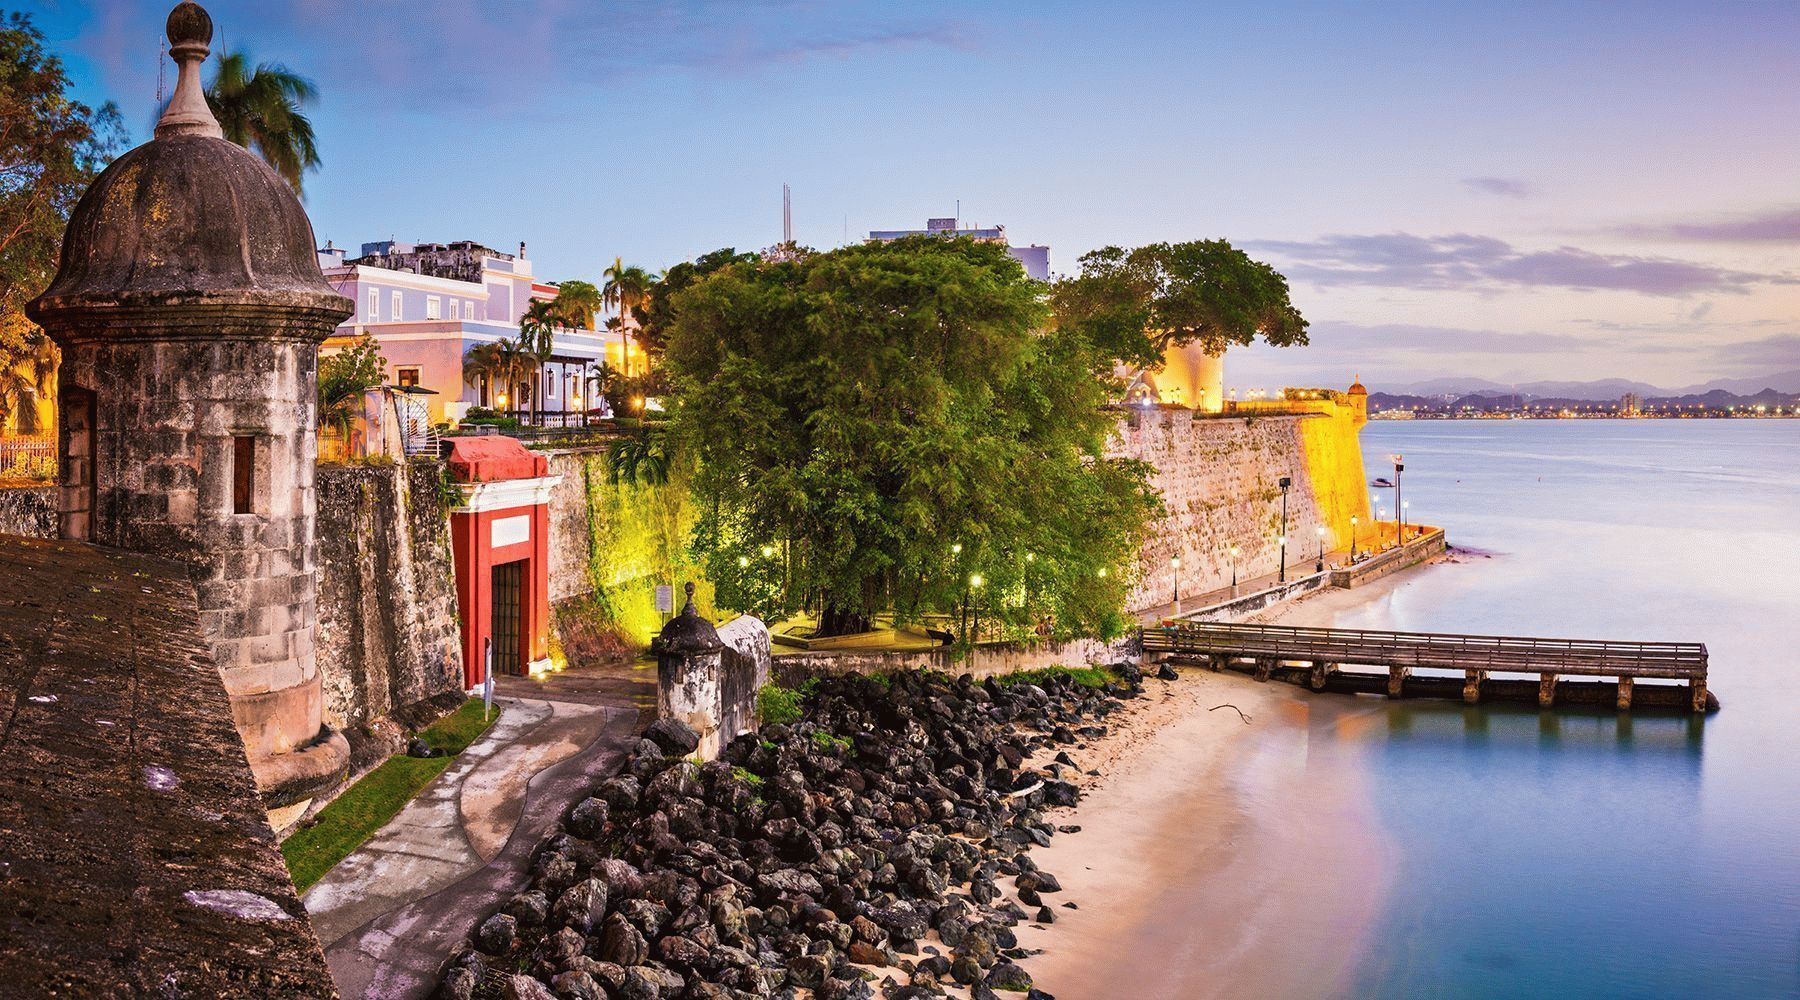 the island of puerto rico 2017-09-28 puerto rico is a large caribbean island of roughly 3,500 square miles located in the west indies it's the easternmost island of the greater antilles chain.